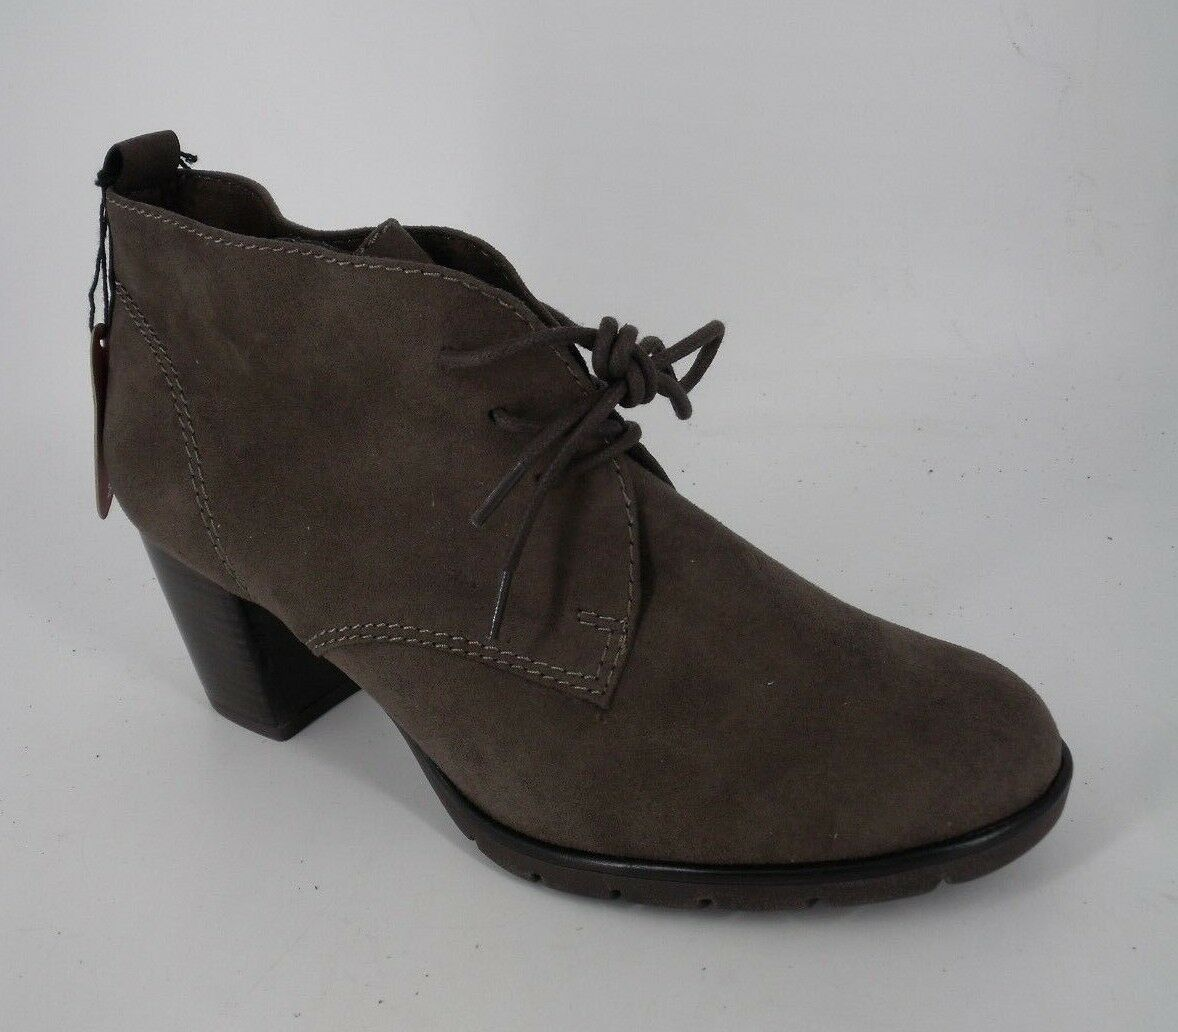 MARCO TOZZI ANKLE  BOOTS GREY SIZE UK 5 EU 38 NH182 EE 01